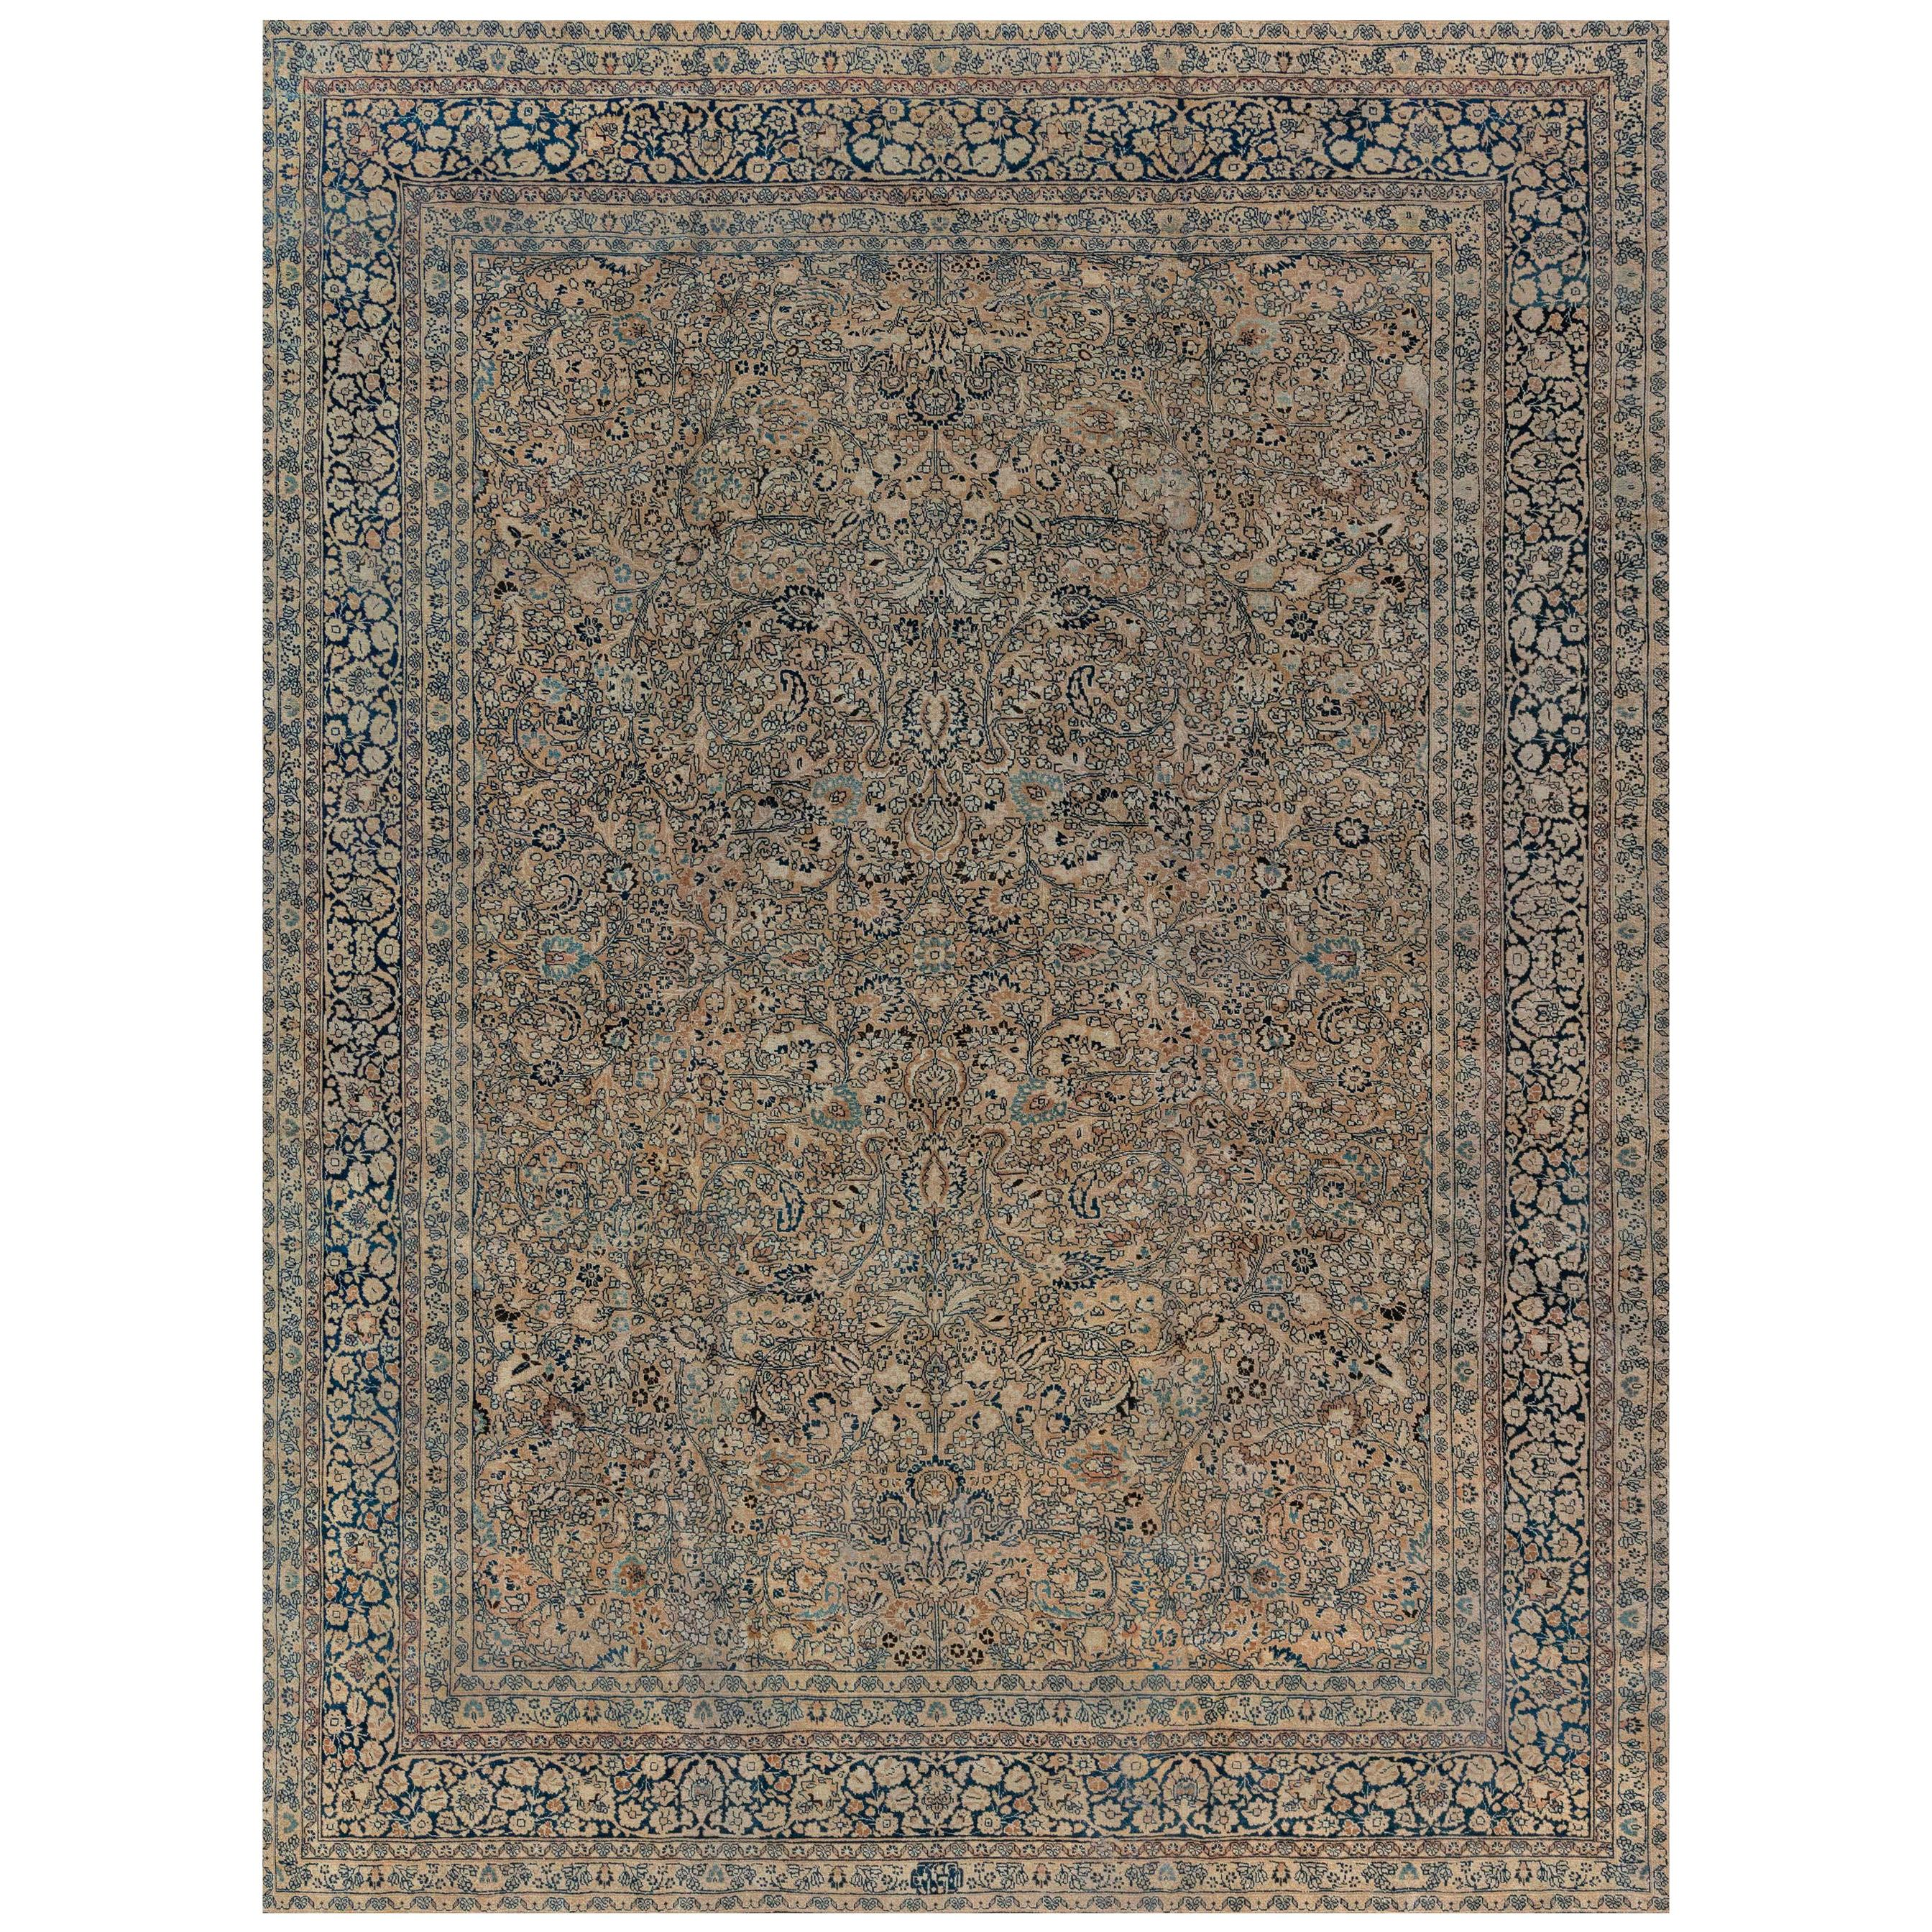 Late 19th Century Khoran Rug From